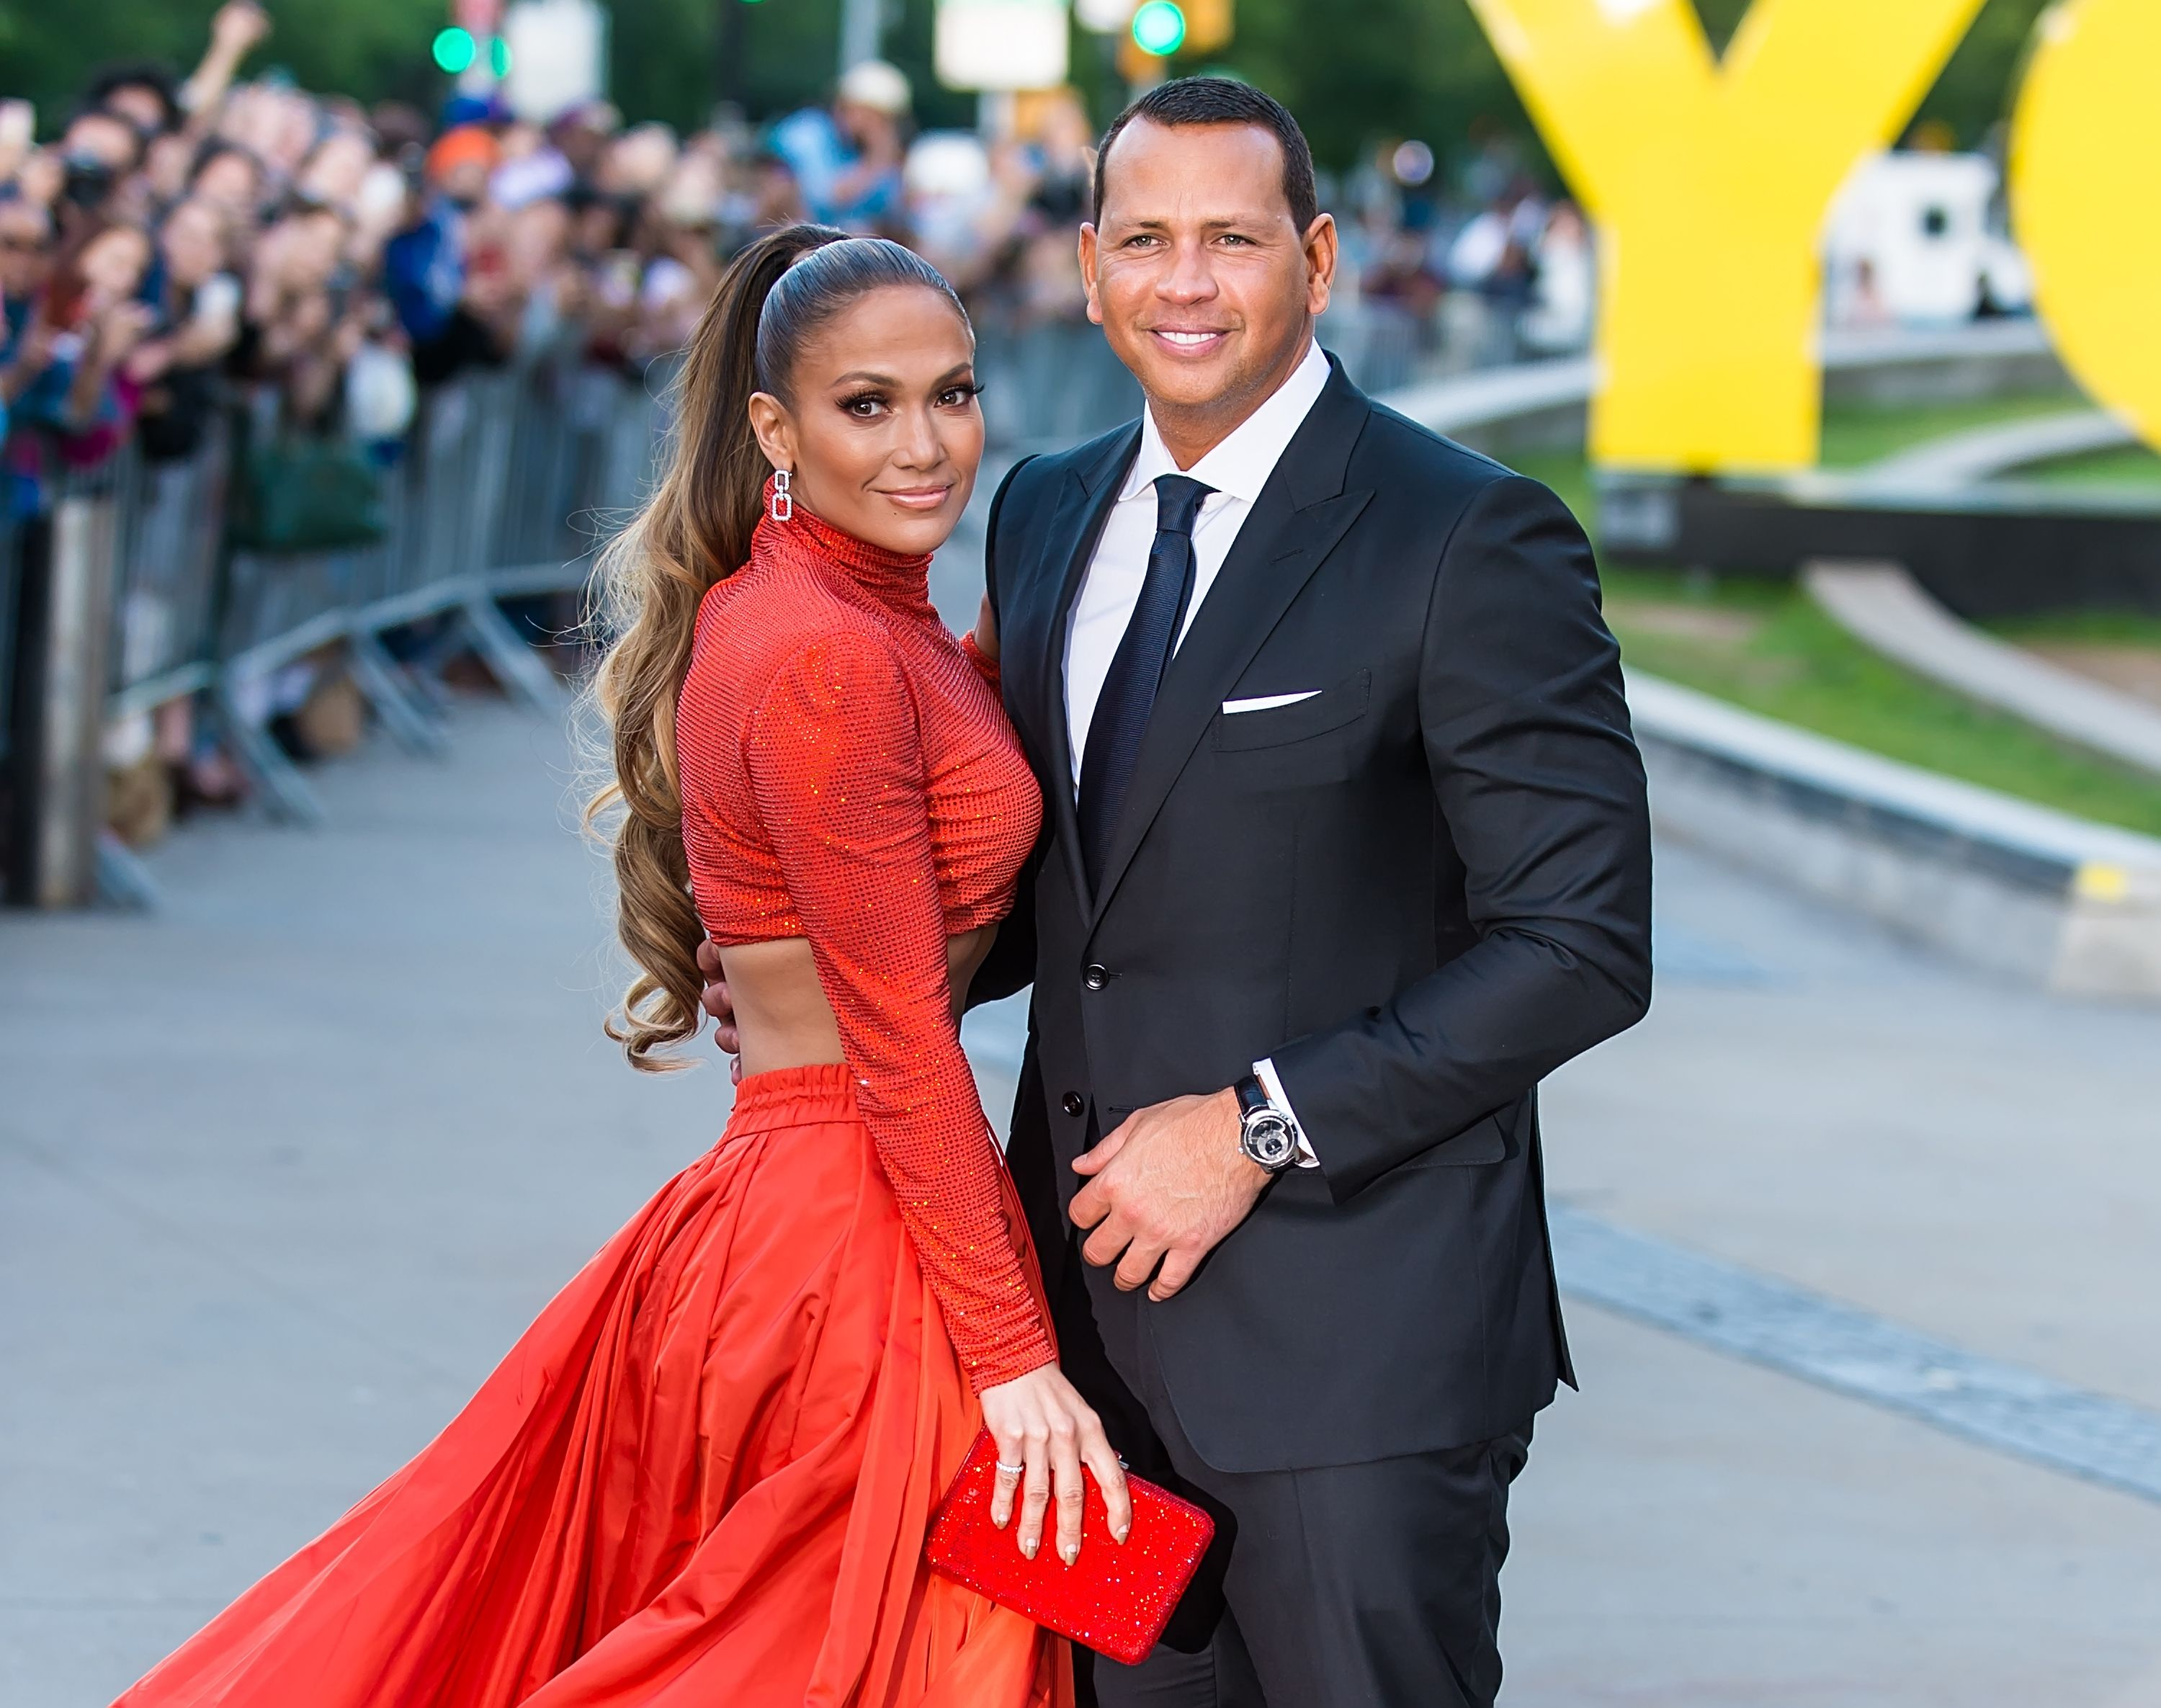 Jennifer Lopez and Alex Rodriguez at the CFDA Fashion Awards on June 3, 2019, in New York City   Photo: Gilbert Carrasquillo/GC Images/Getty Images